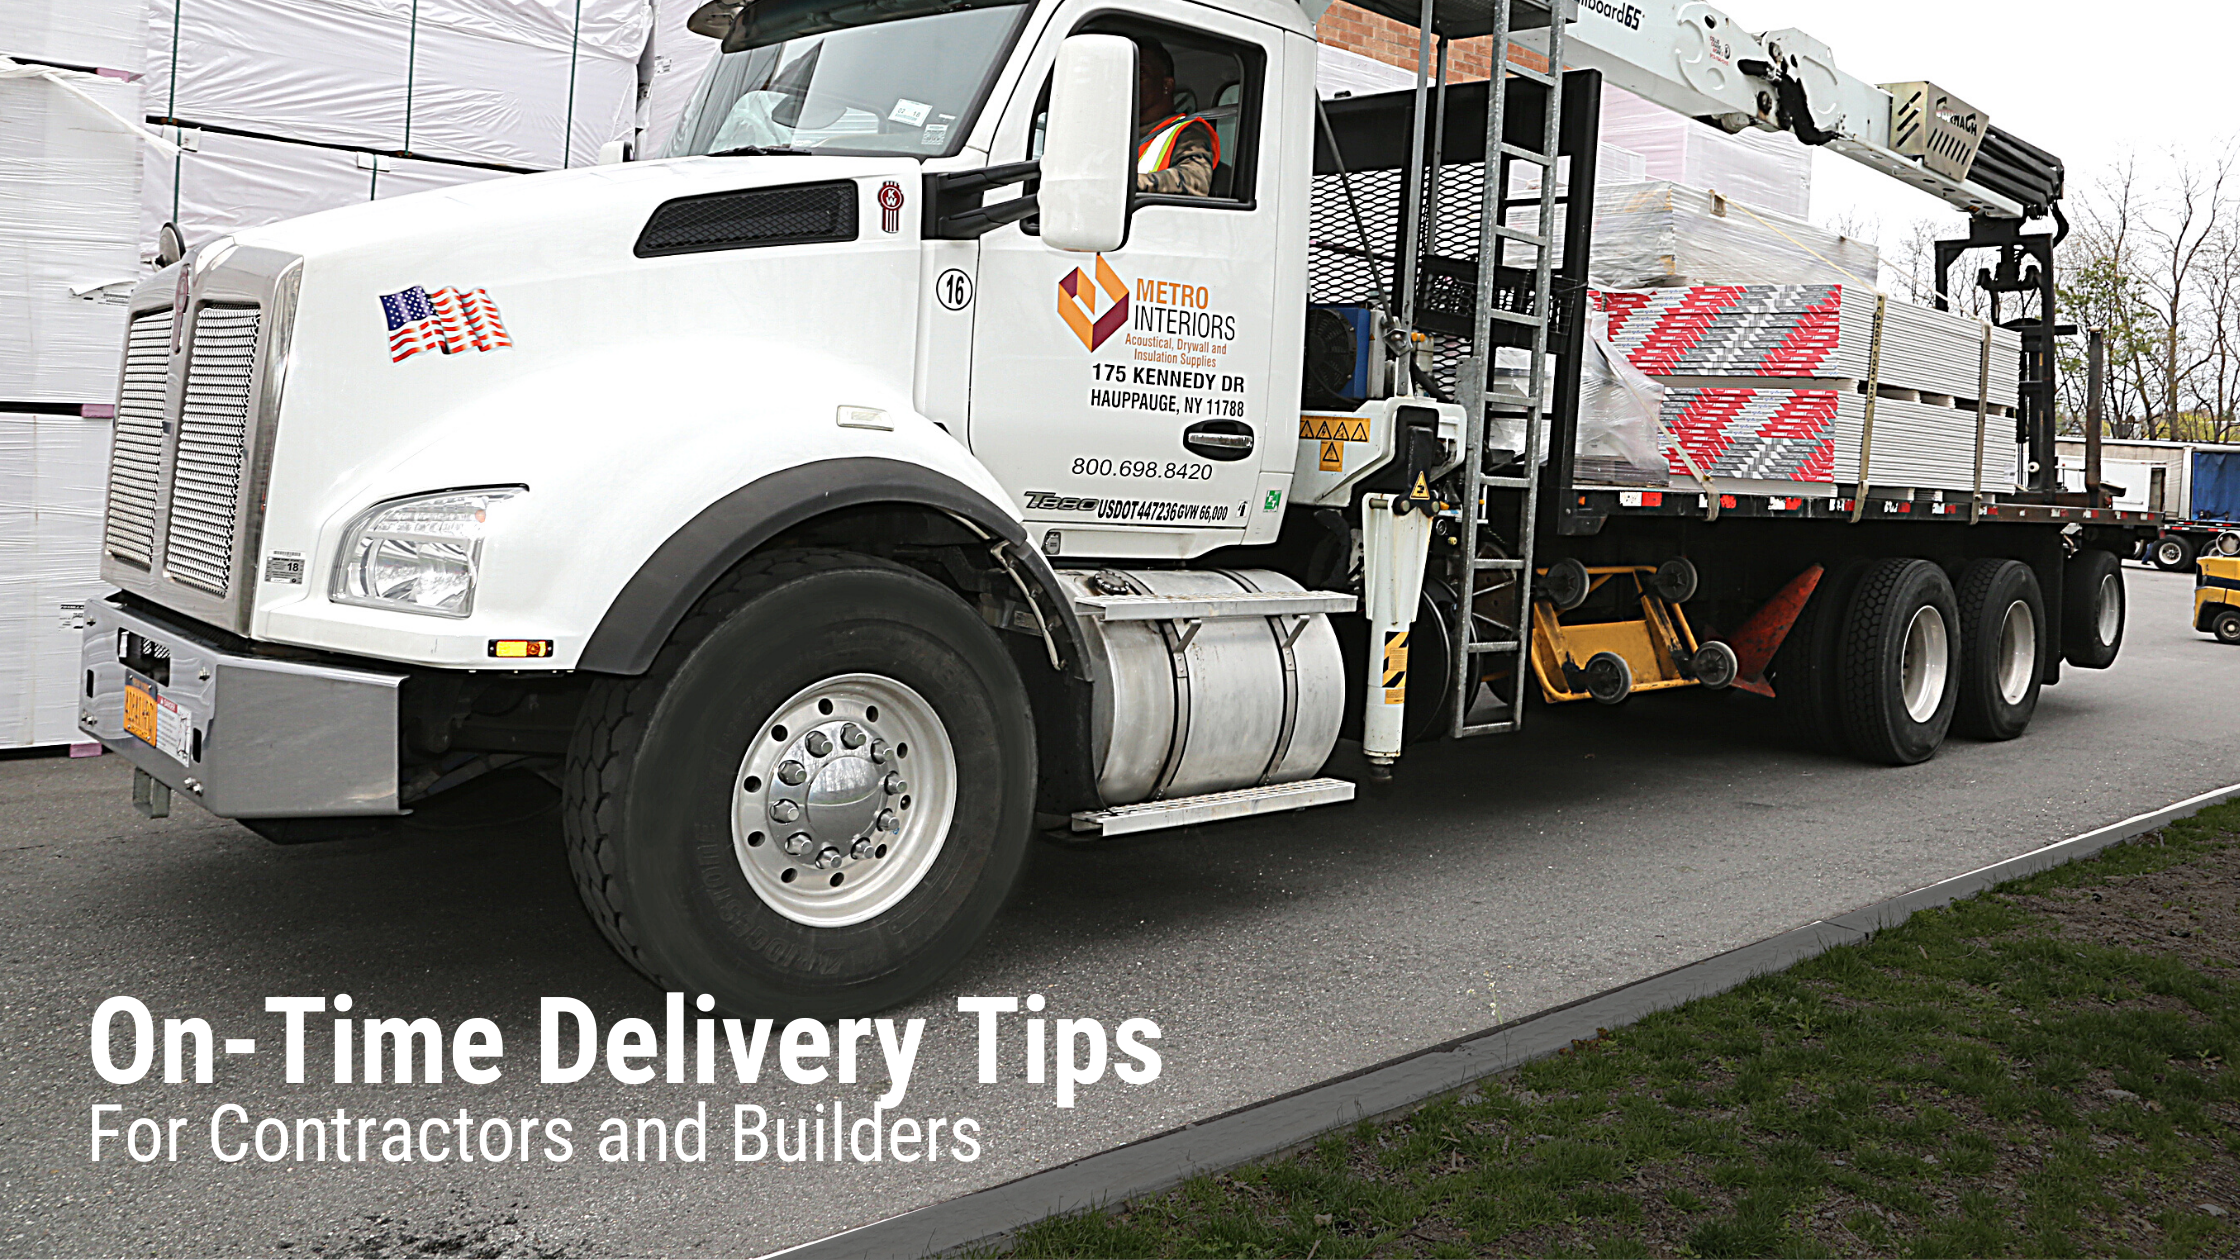 On-Time Delivery Tips for Contractors and Builders